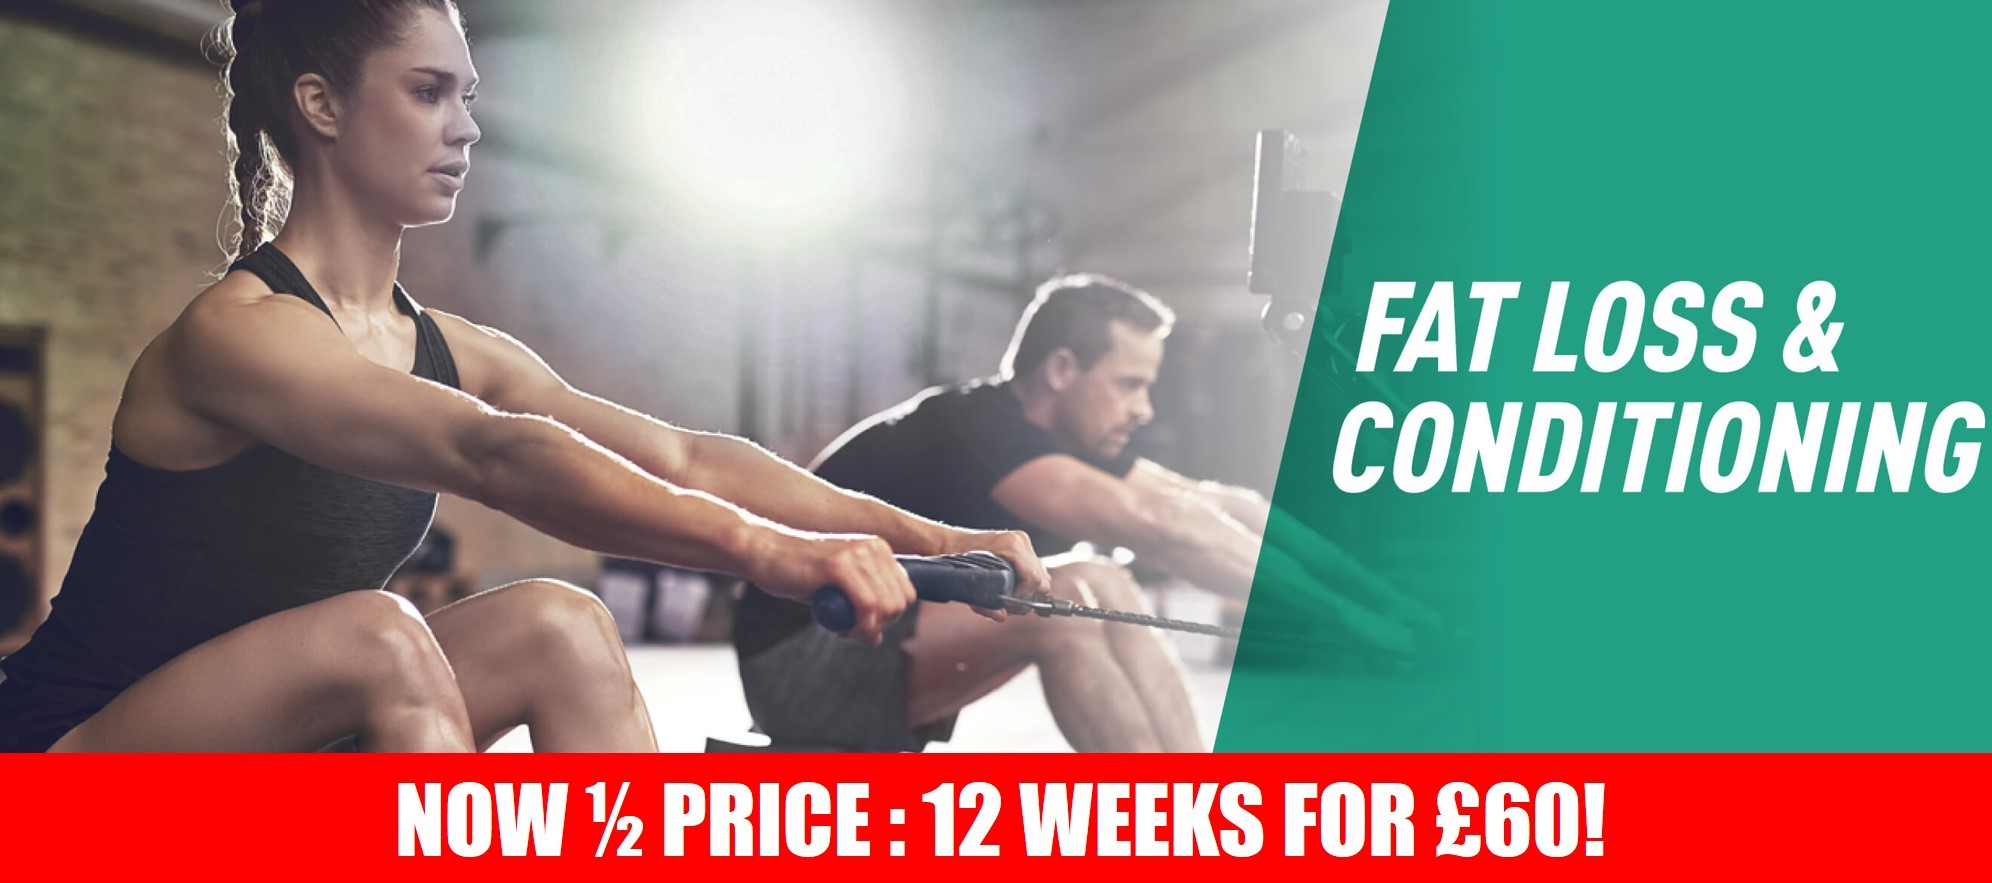 Fat Loss & Conditioning - Online Programme - 50 SALE Banner